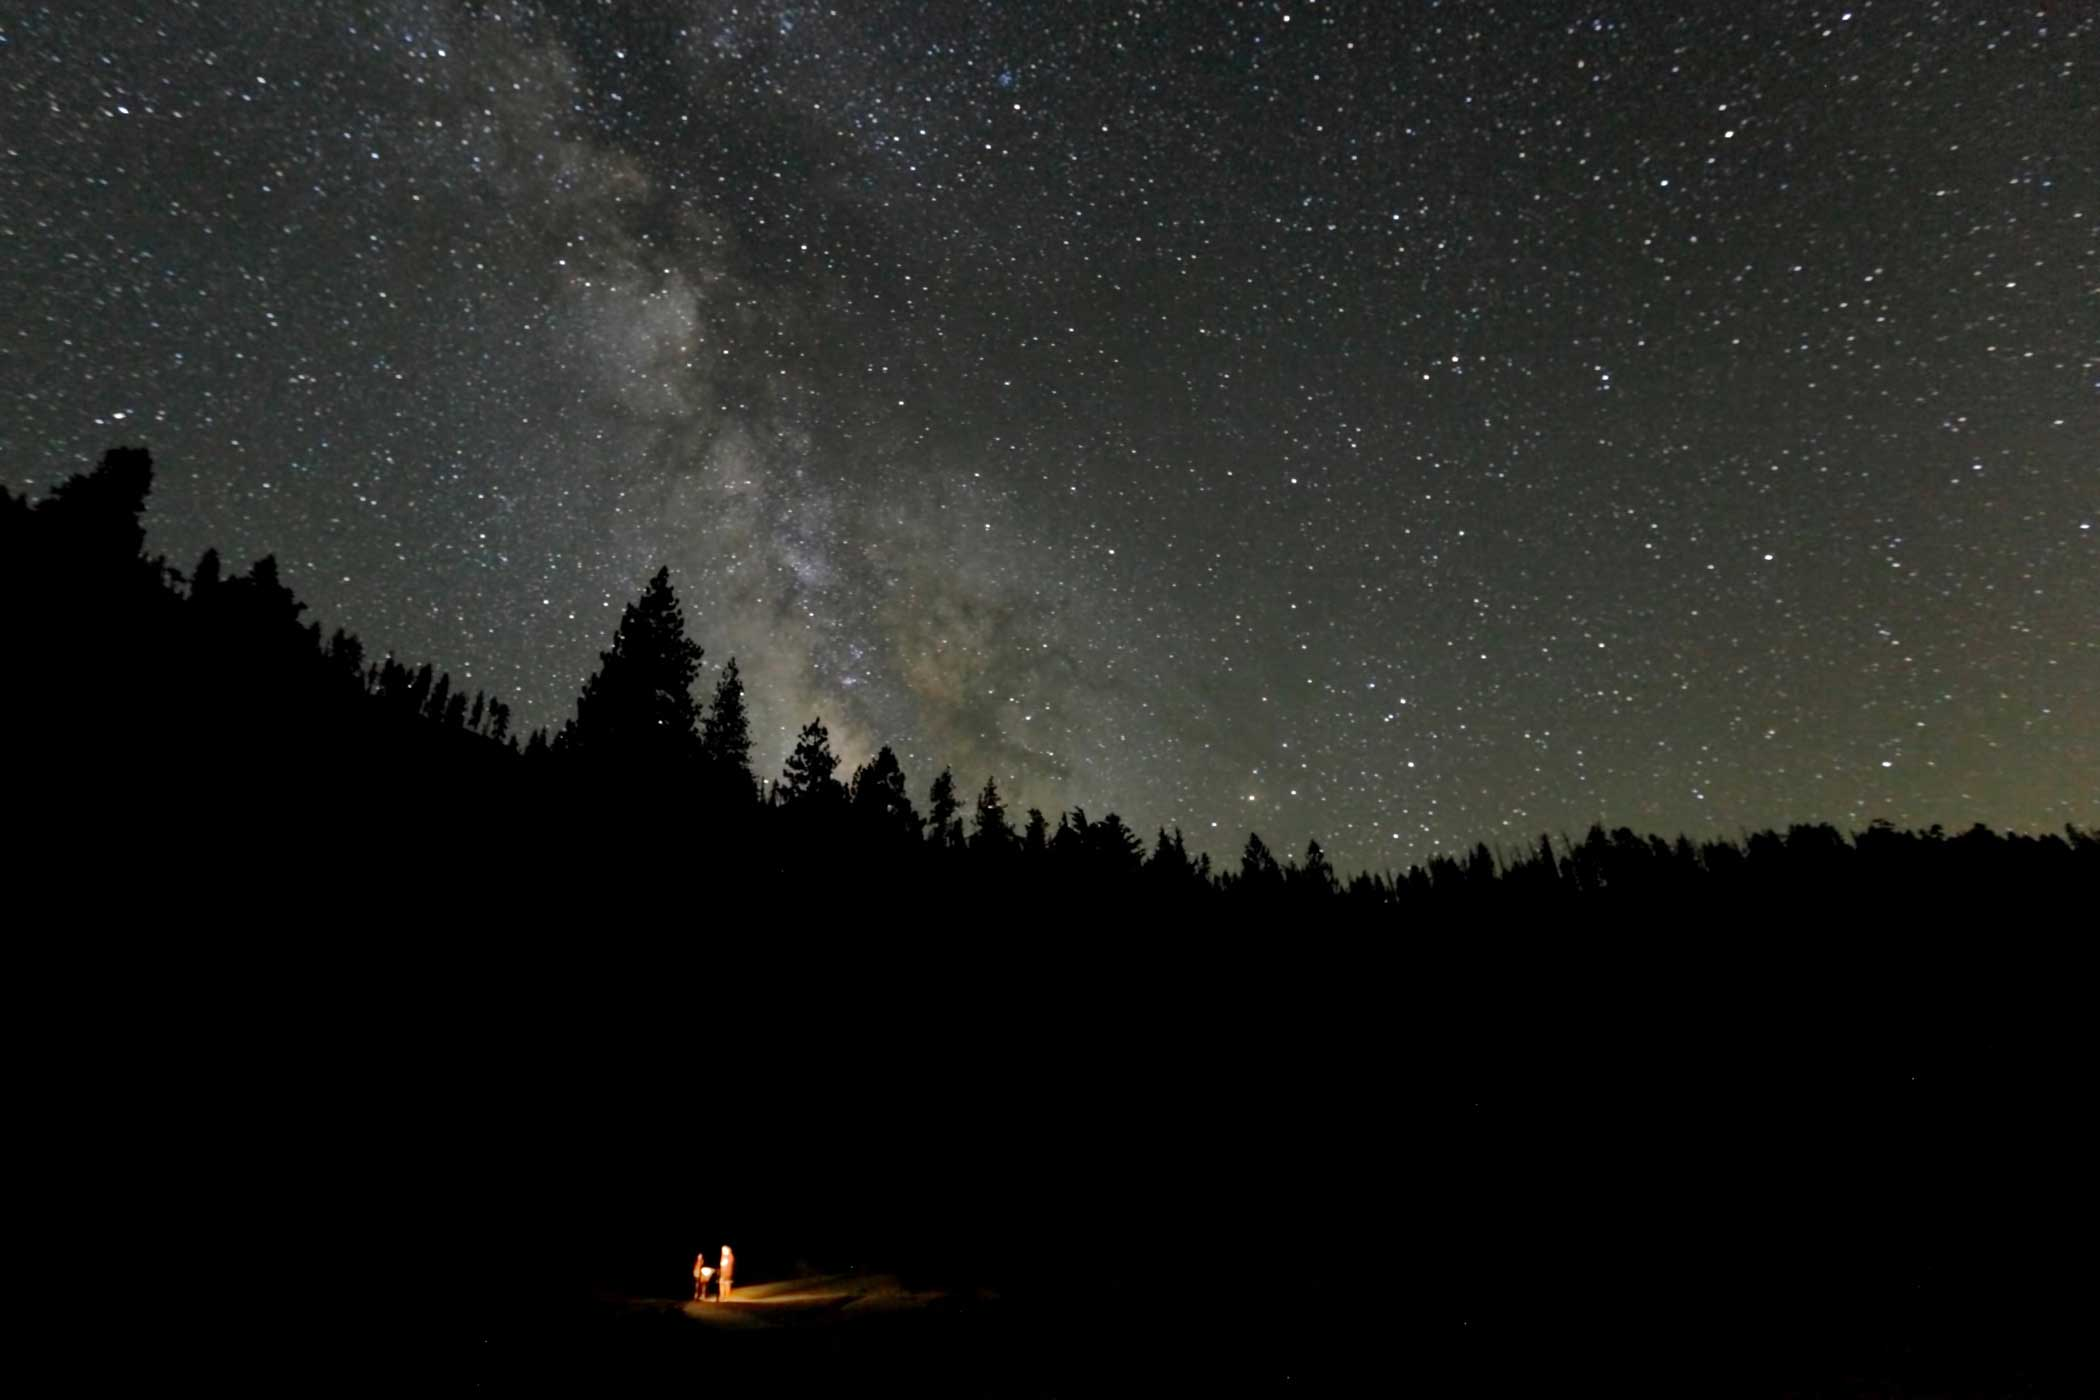 The photographer came across two hikers lost in the wilderness of Yosemite late one evening in July 2011. He captured this image of the tiny figures in a small bubble of torchlight set within a vast, pitch black forest beneath the immense dome of the sky. It highlights the wonder, beauty and awe of astronomy.